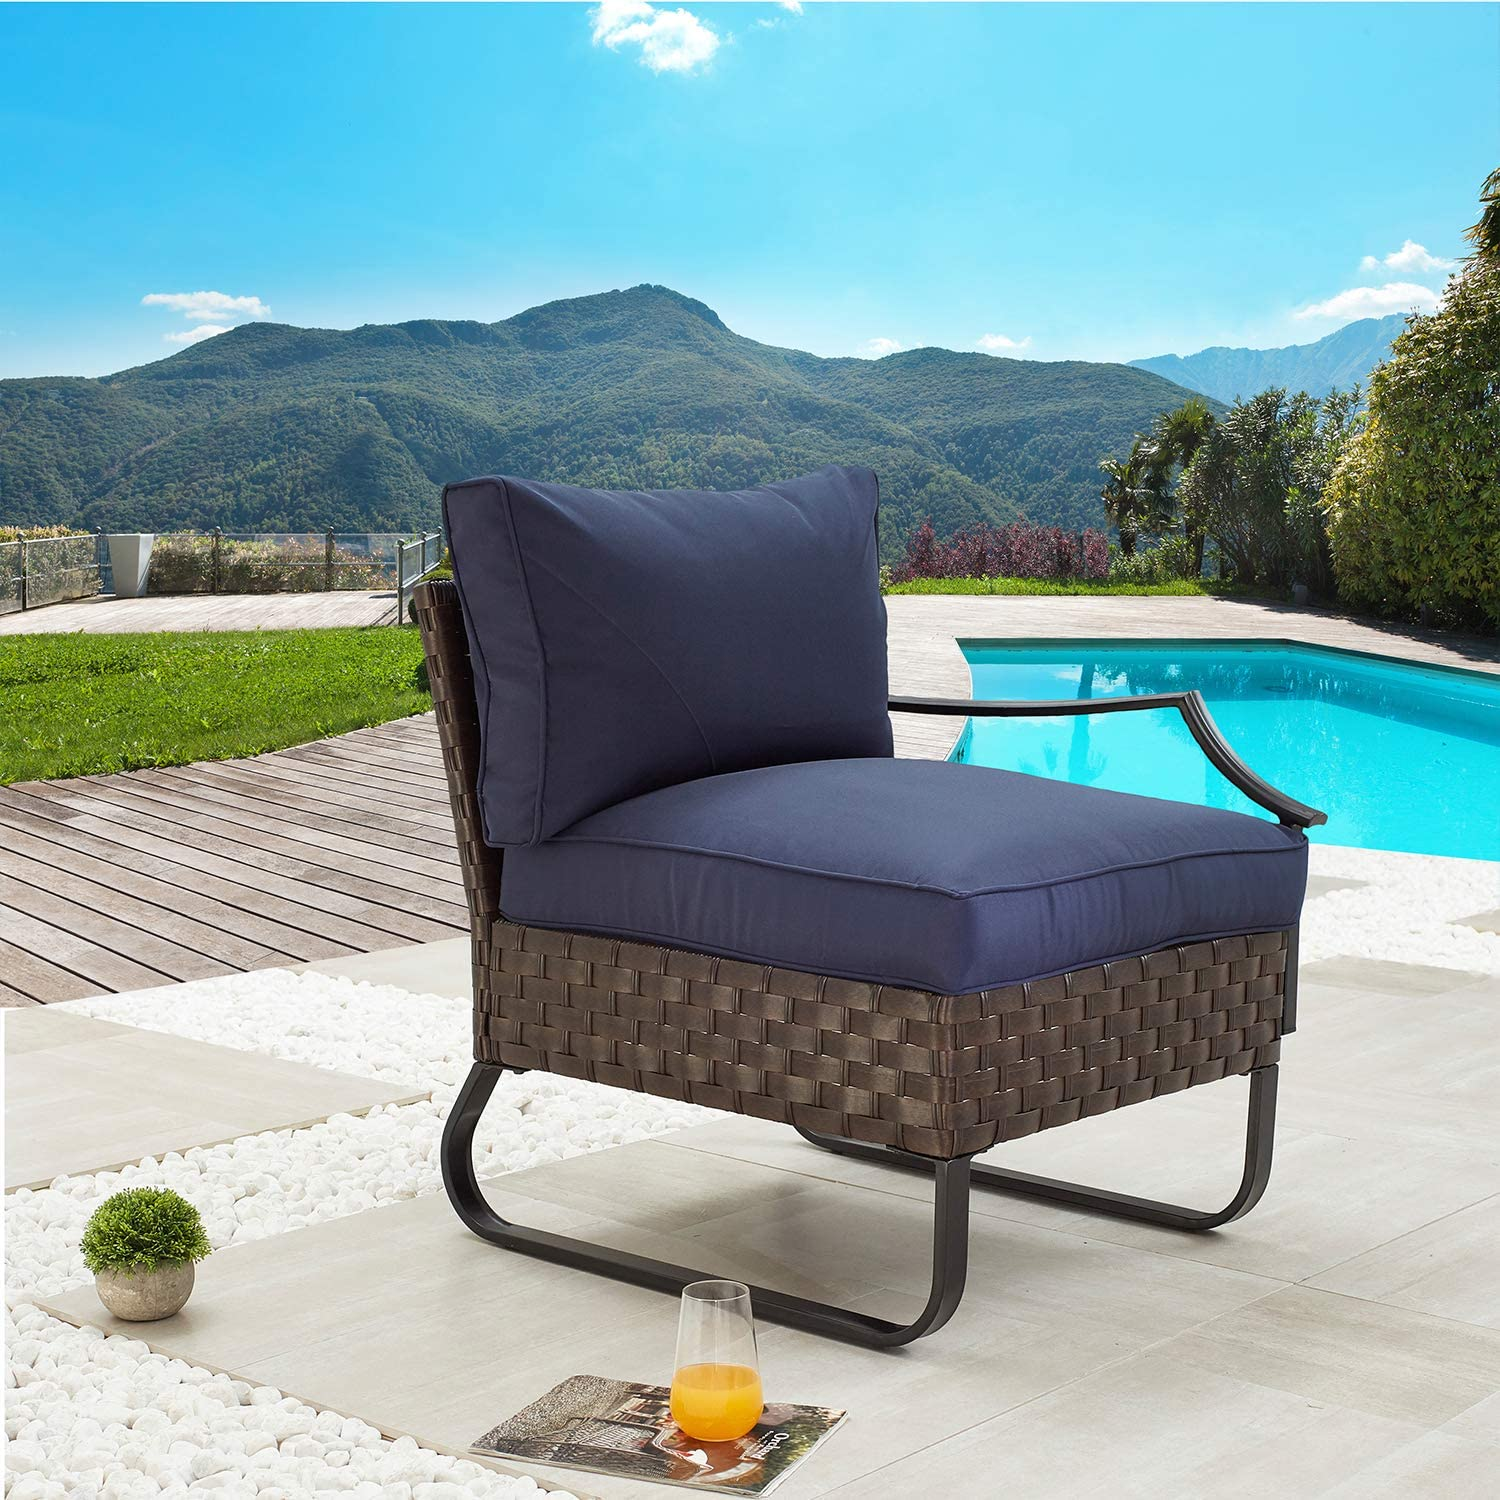 Festival A surprise price is realized Depot Dining Outdoor Patio Left Same day shipping Armres Bistro Furniture